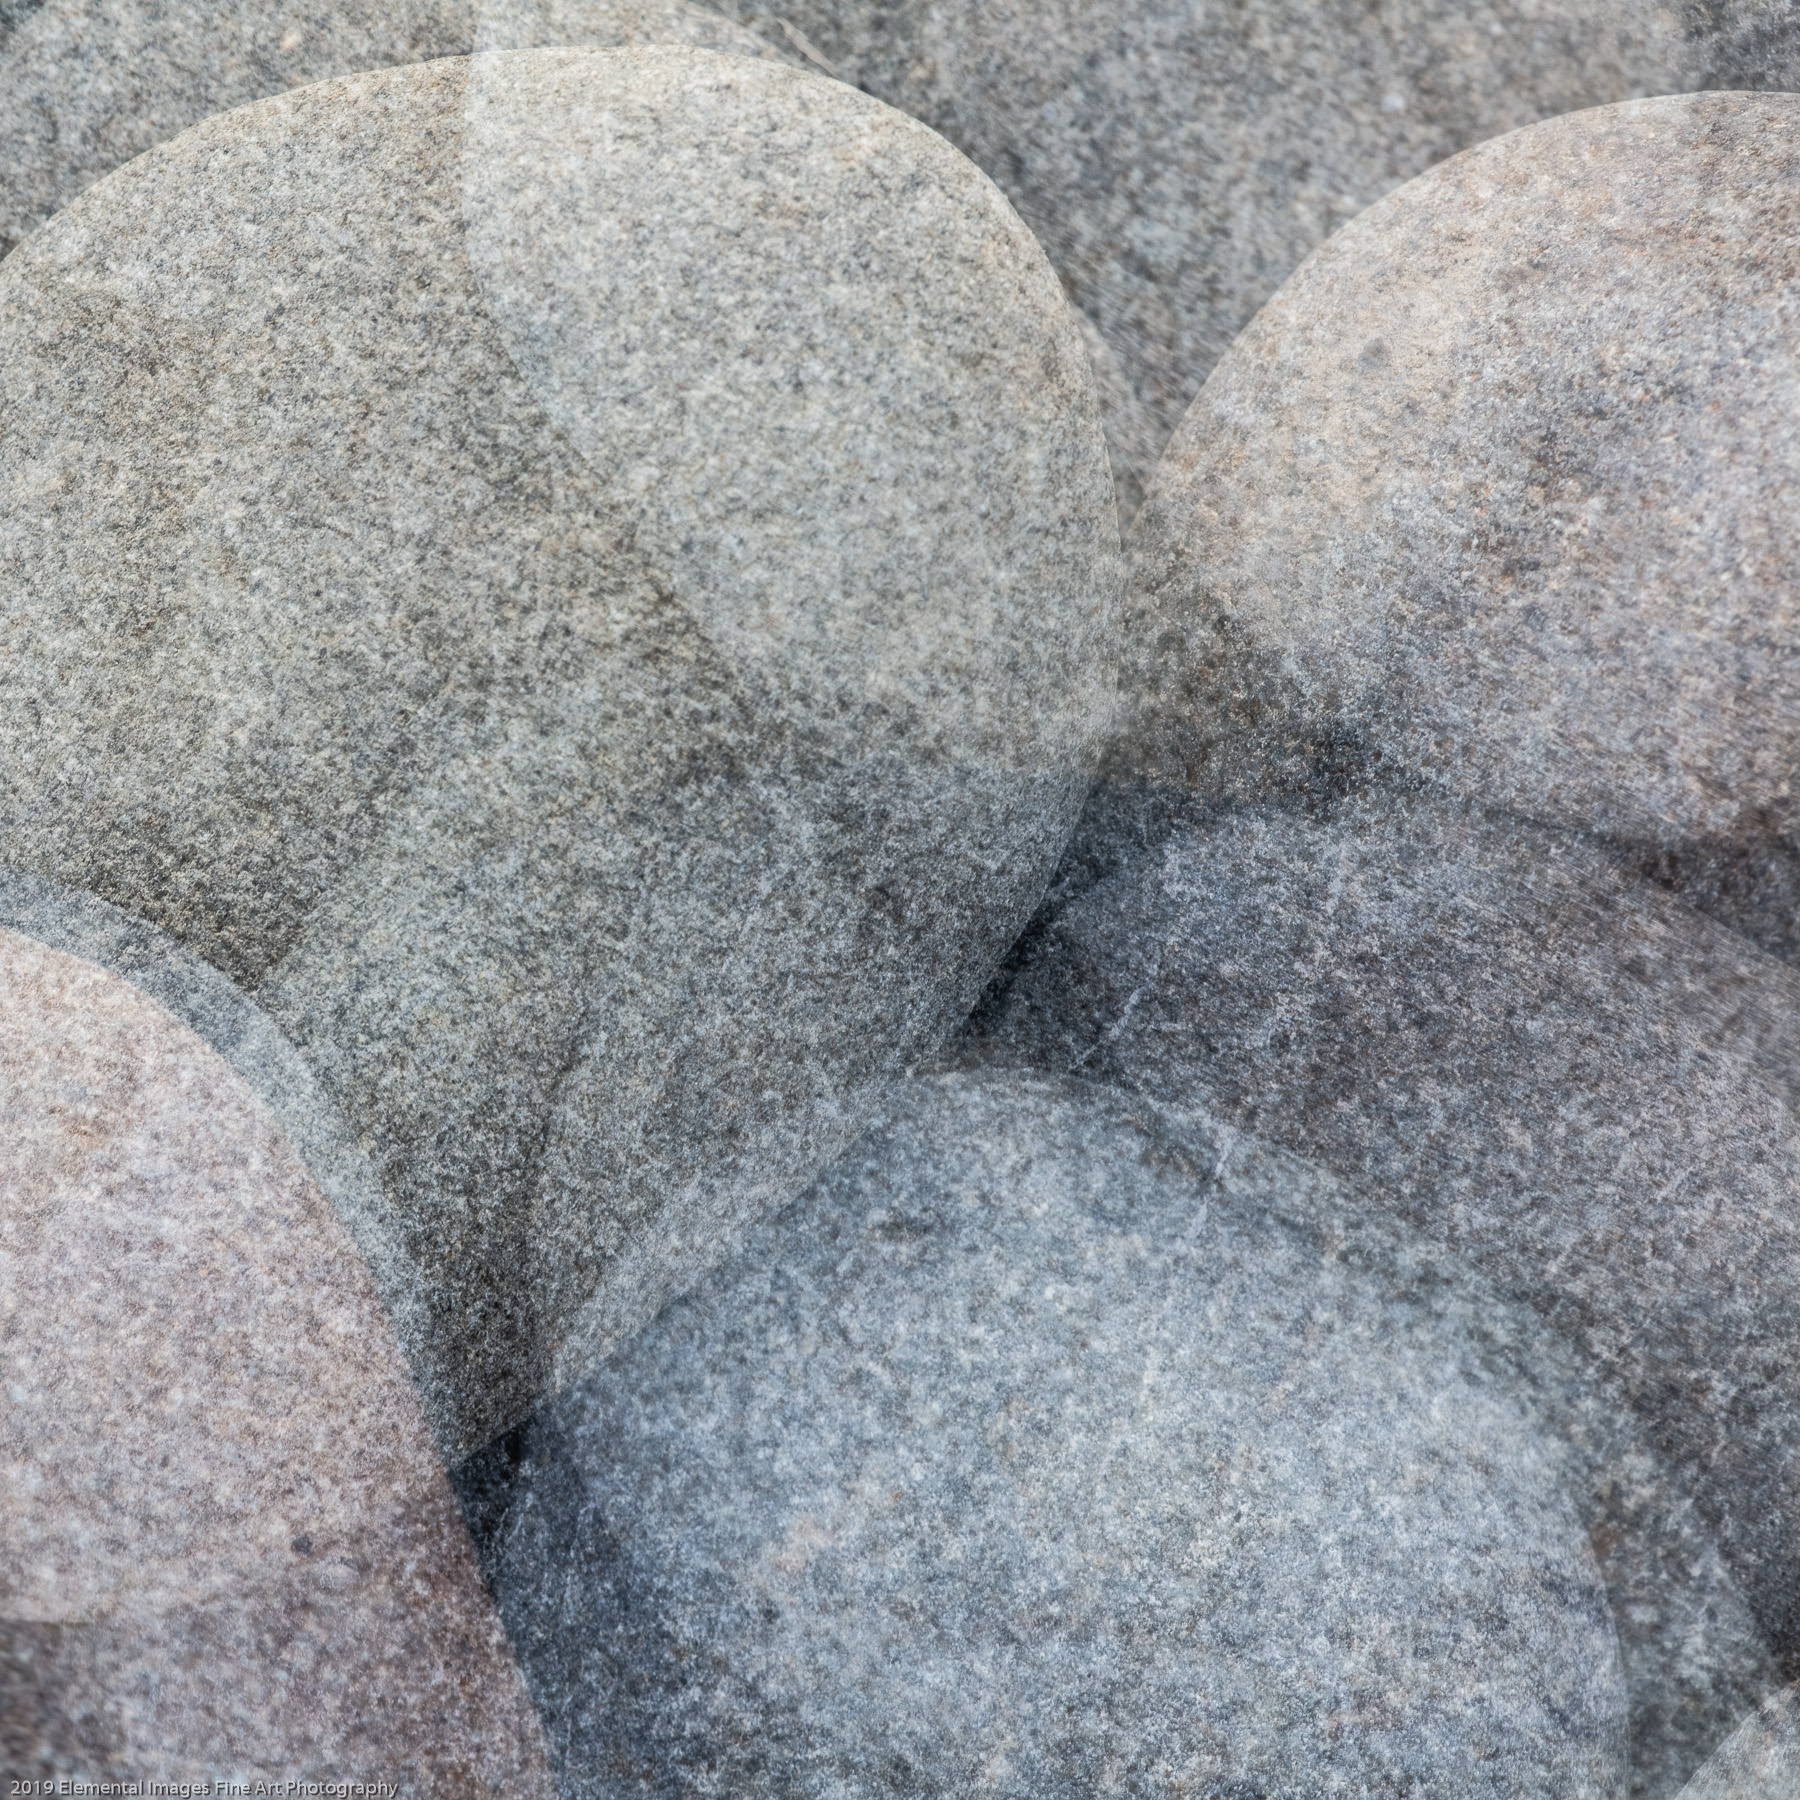 Stones #52 | Olympic National Park | WA | USA - © 2019 Elemental Images Fine Art Photography - All Rights Reserved Worldwide